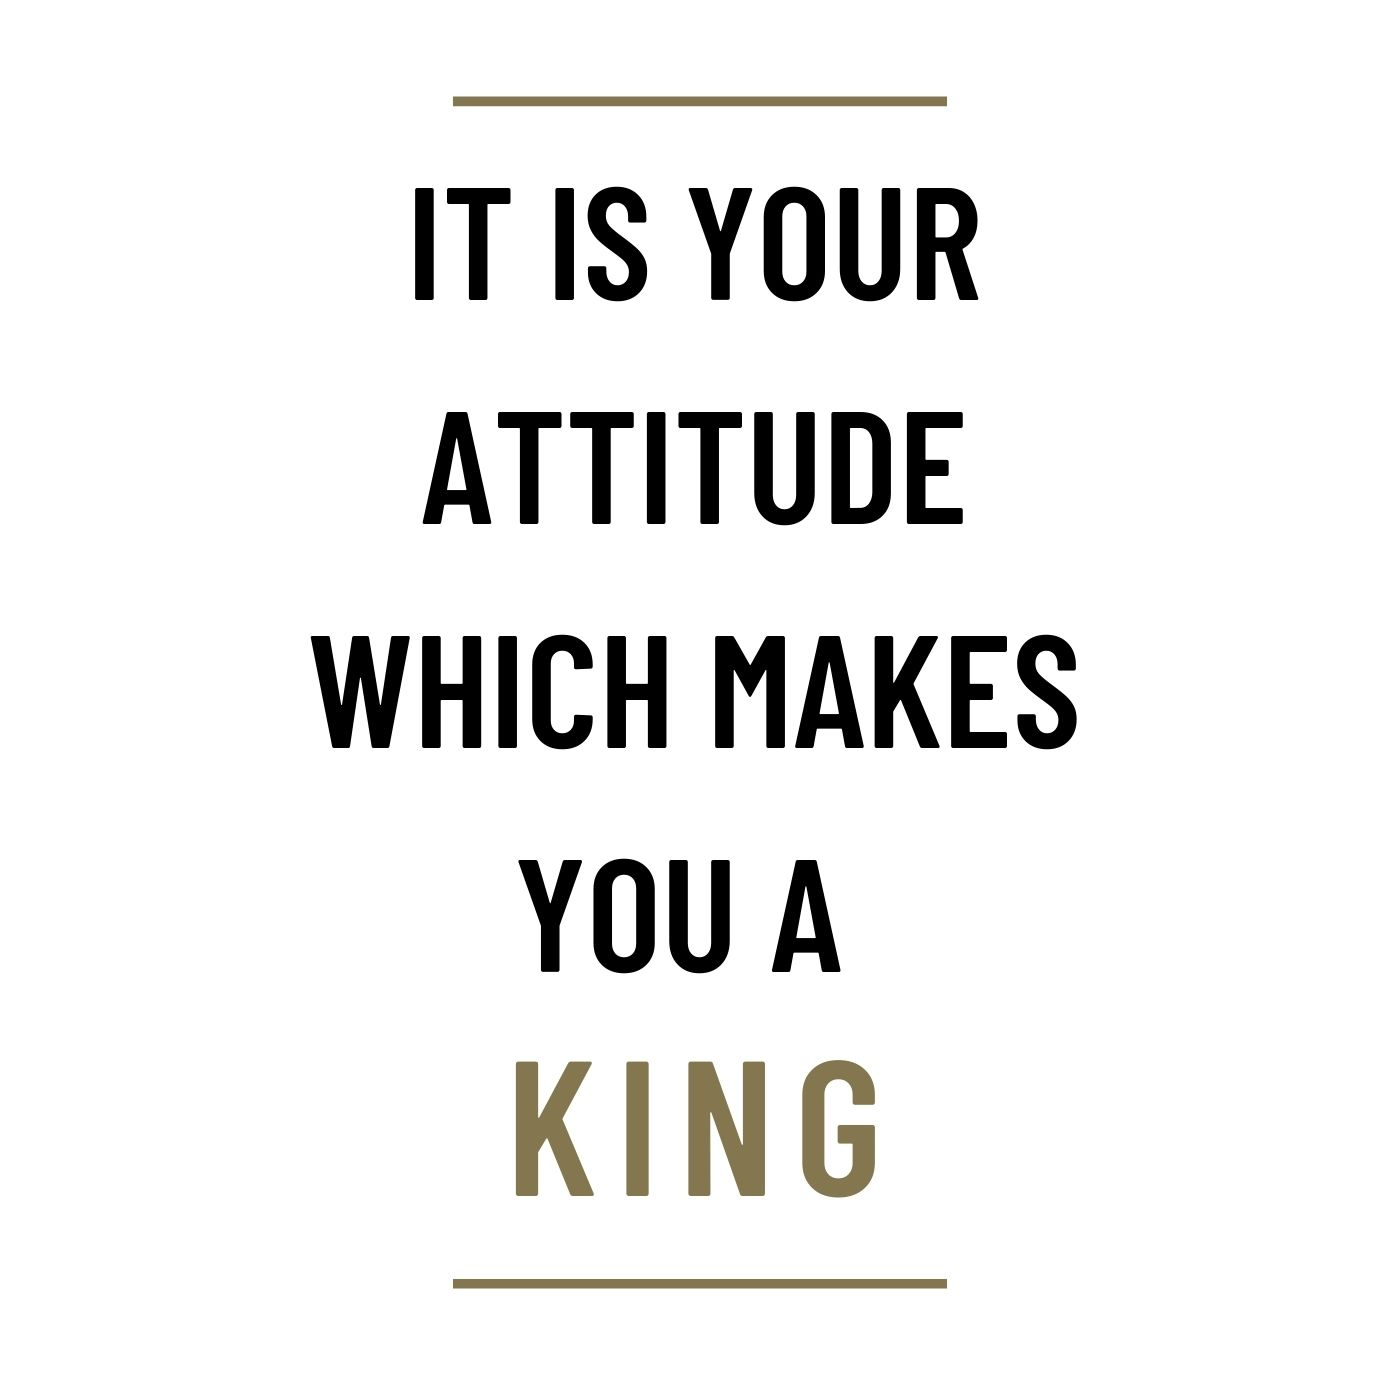 MS71 - It is your attitude which makes you a King